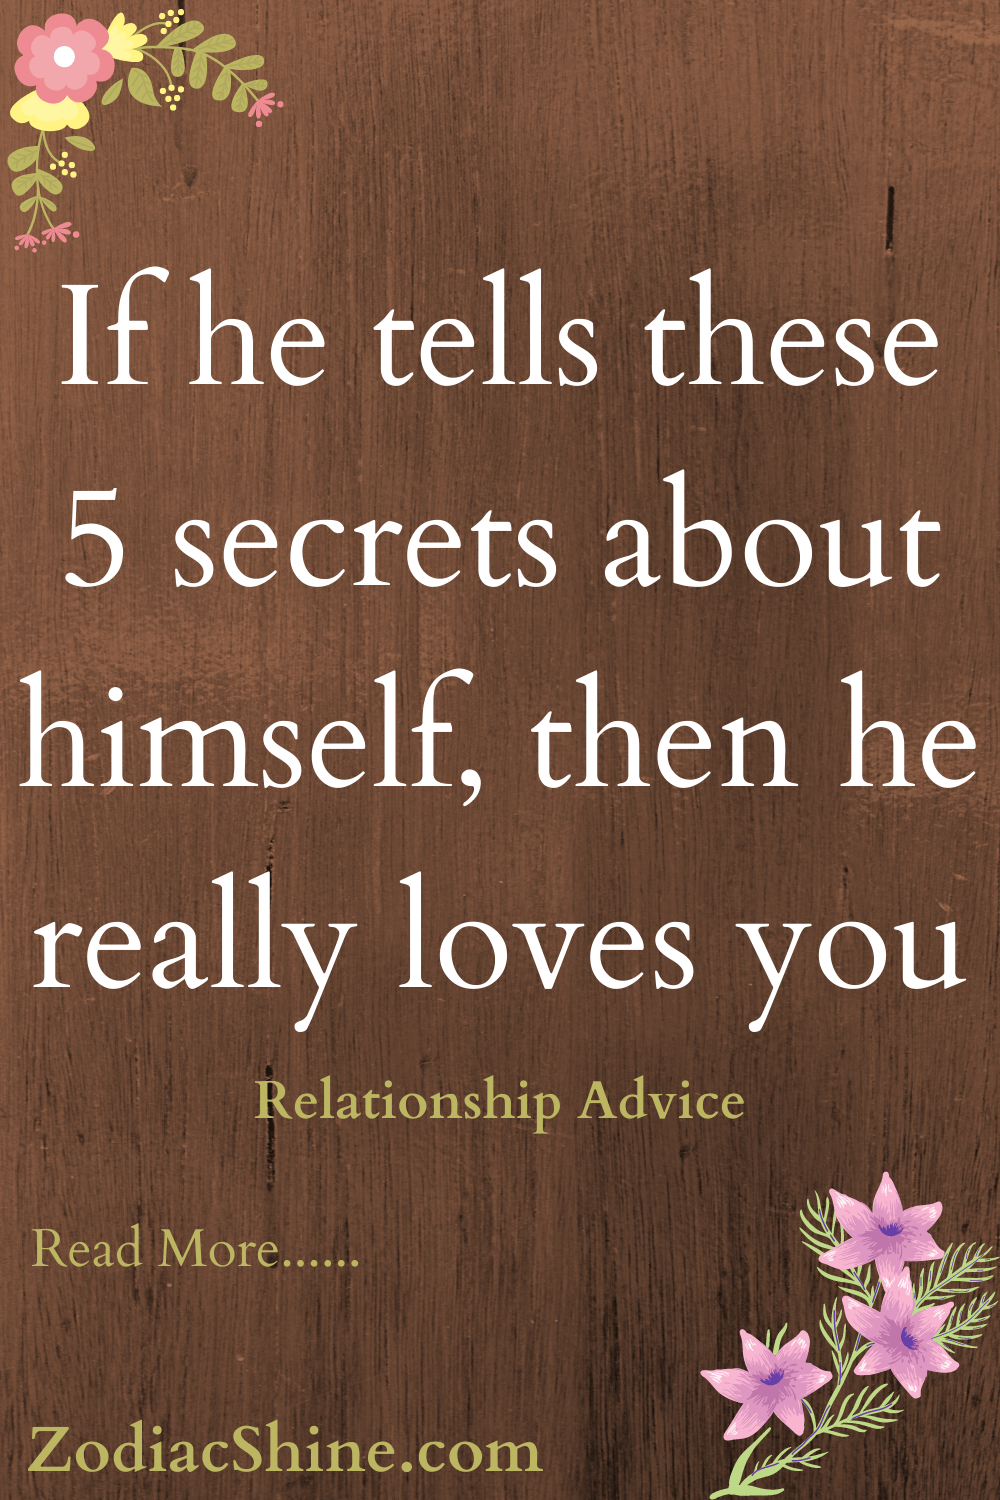 If he tells these 5 secrets about himself, then he really loves you